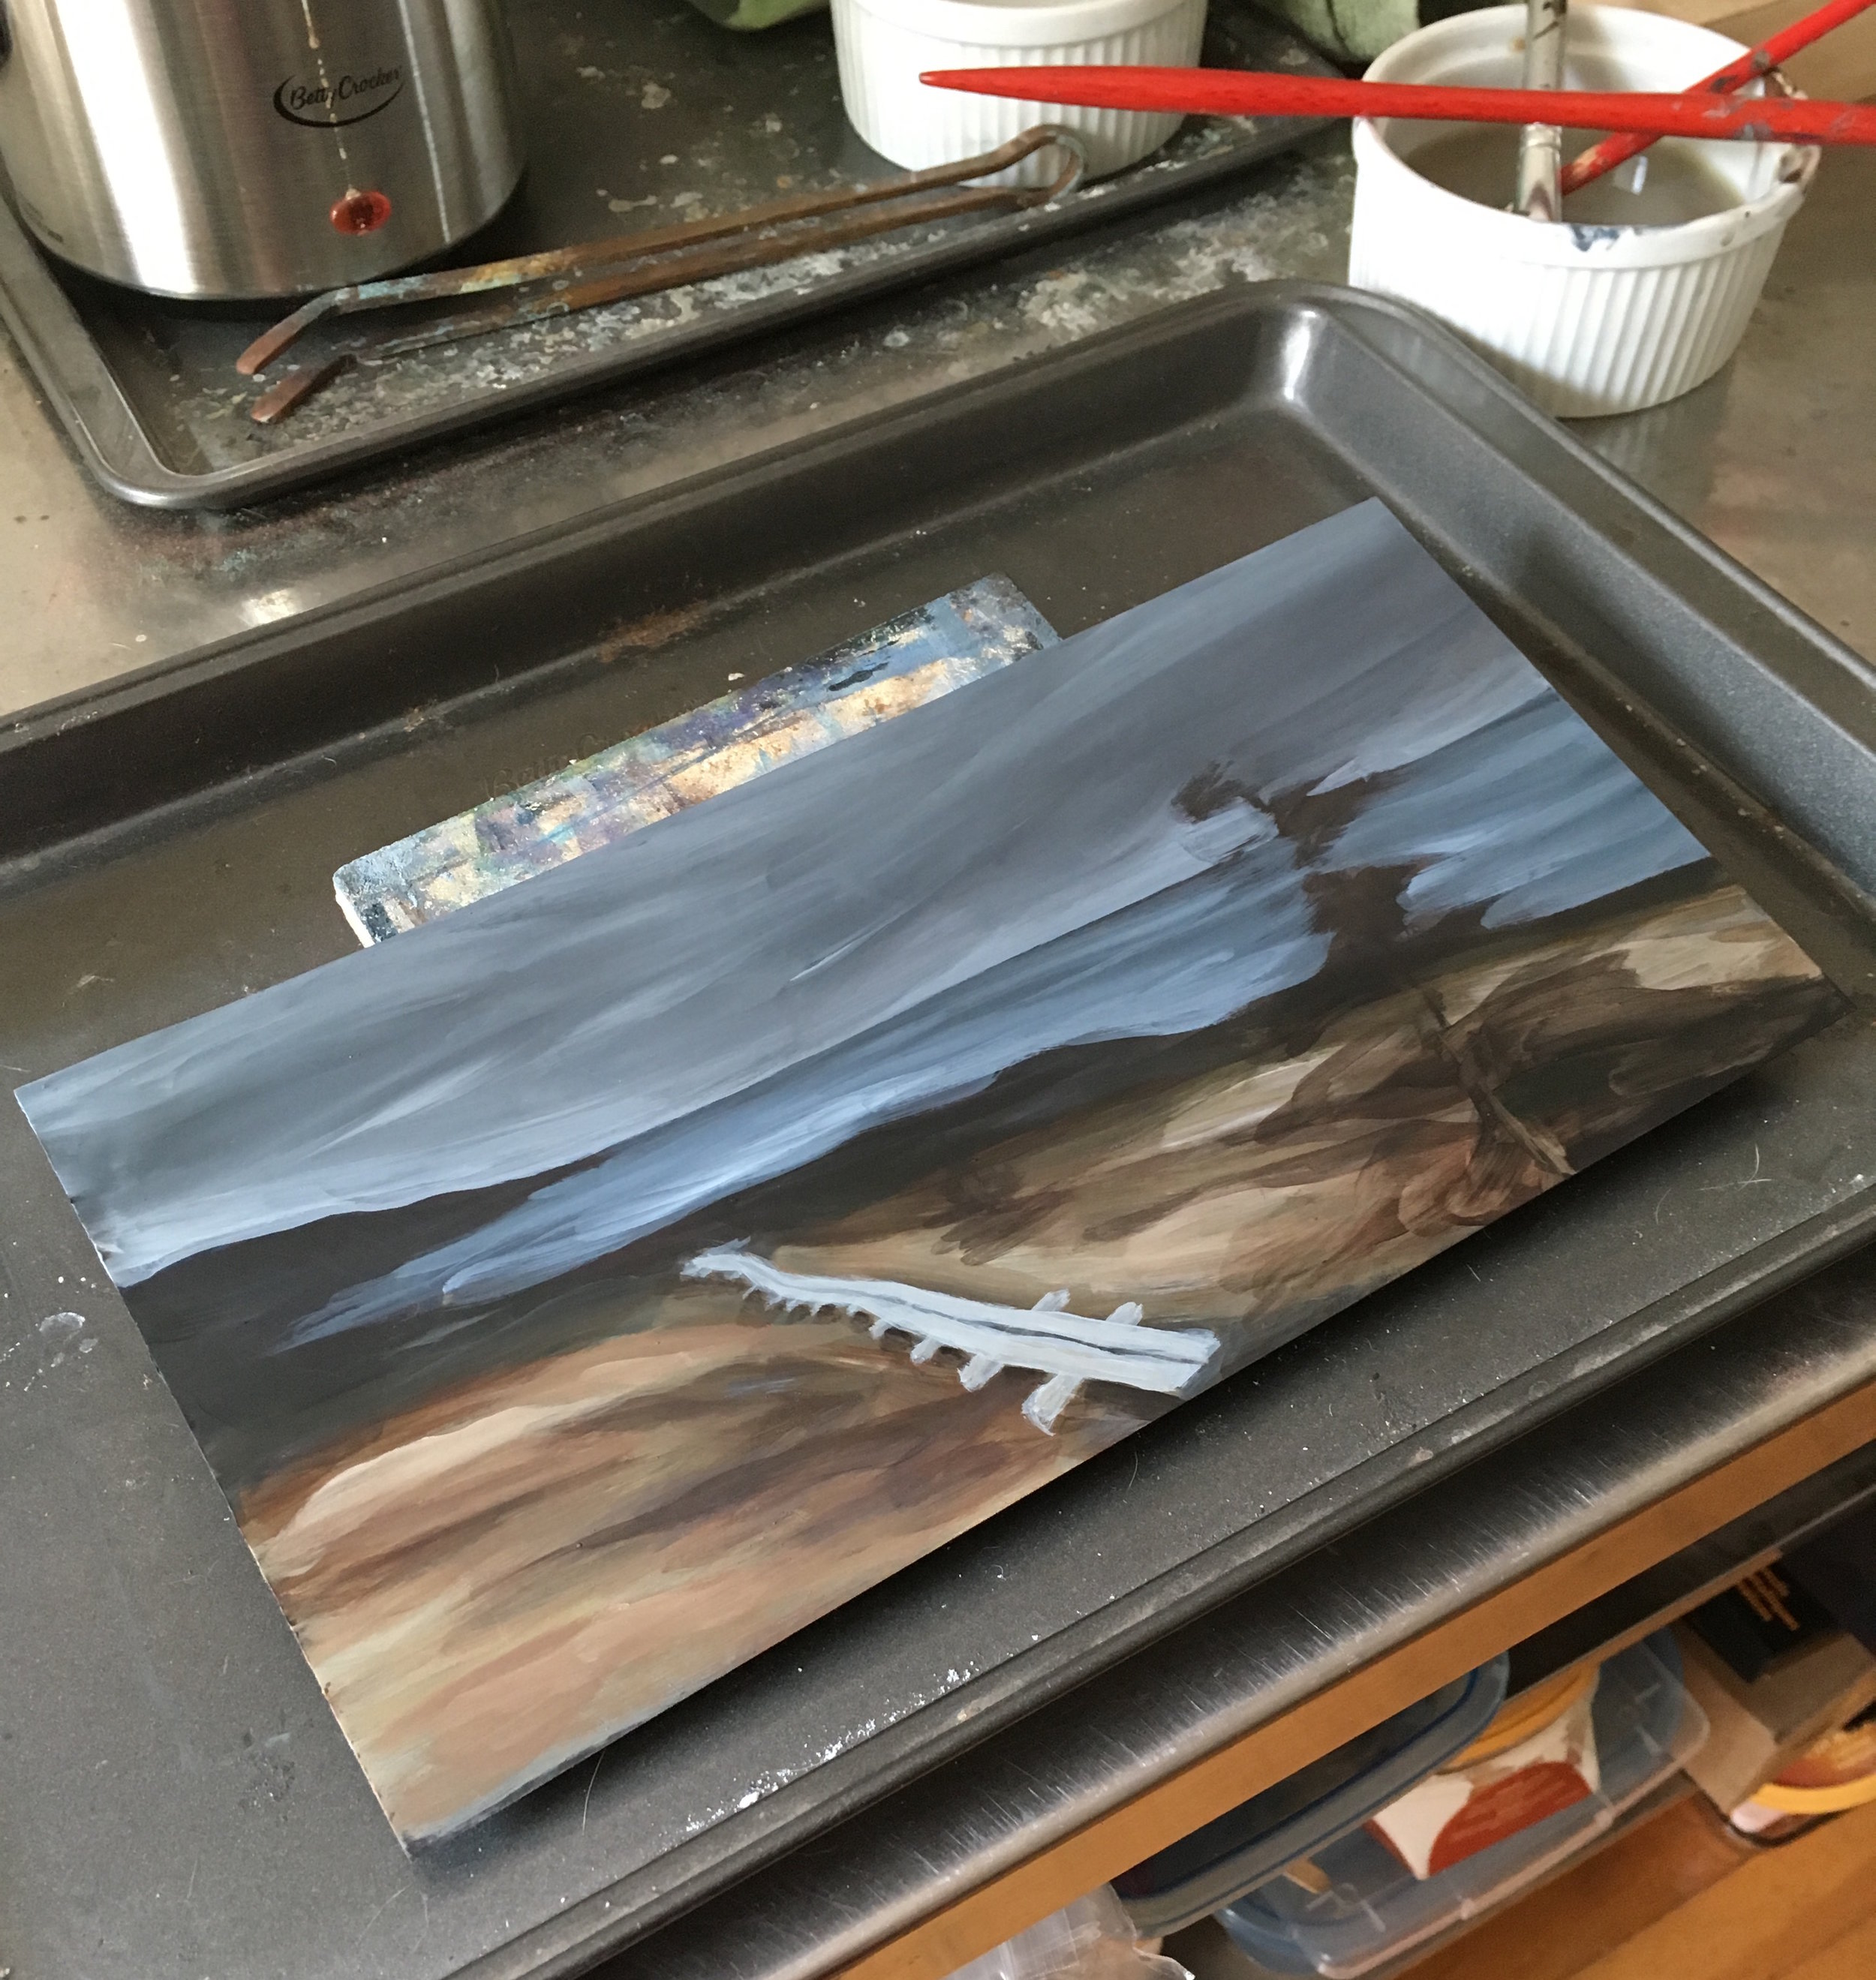 The beginning stages of a painting on copper based on hike at Bay Bulls, NL.